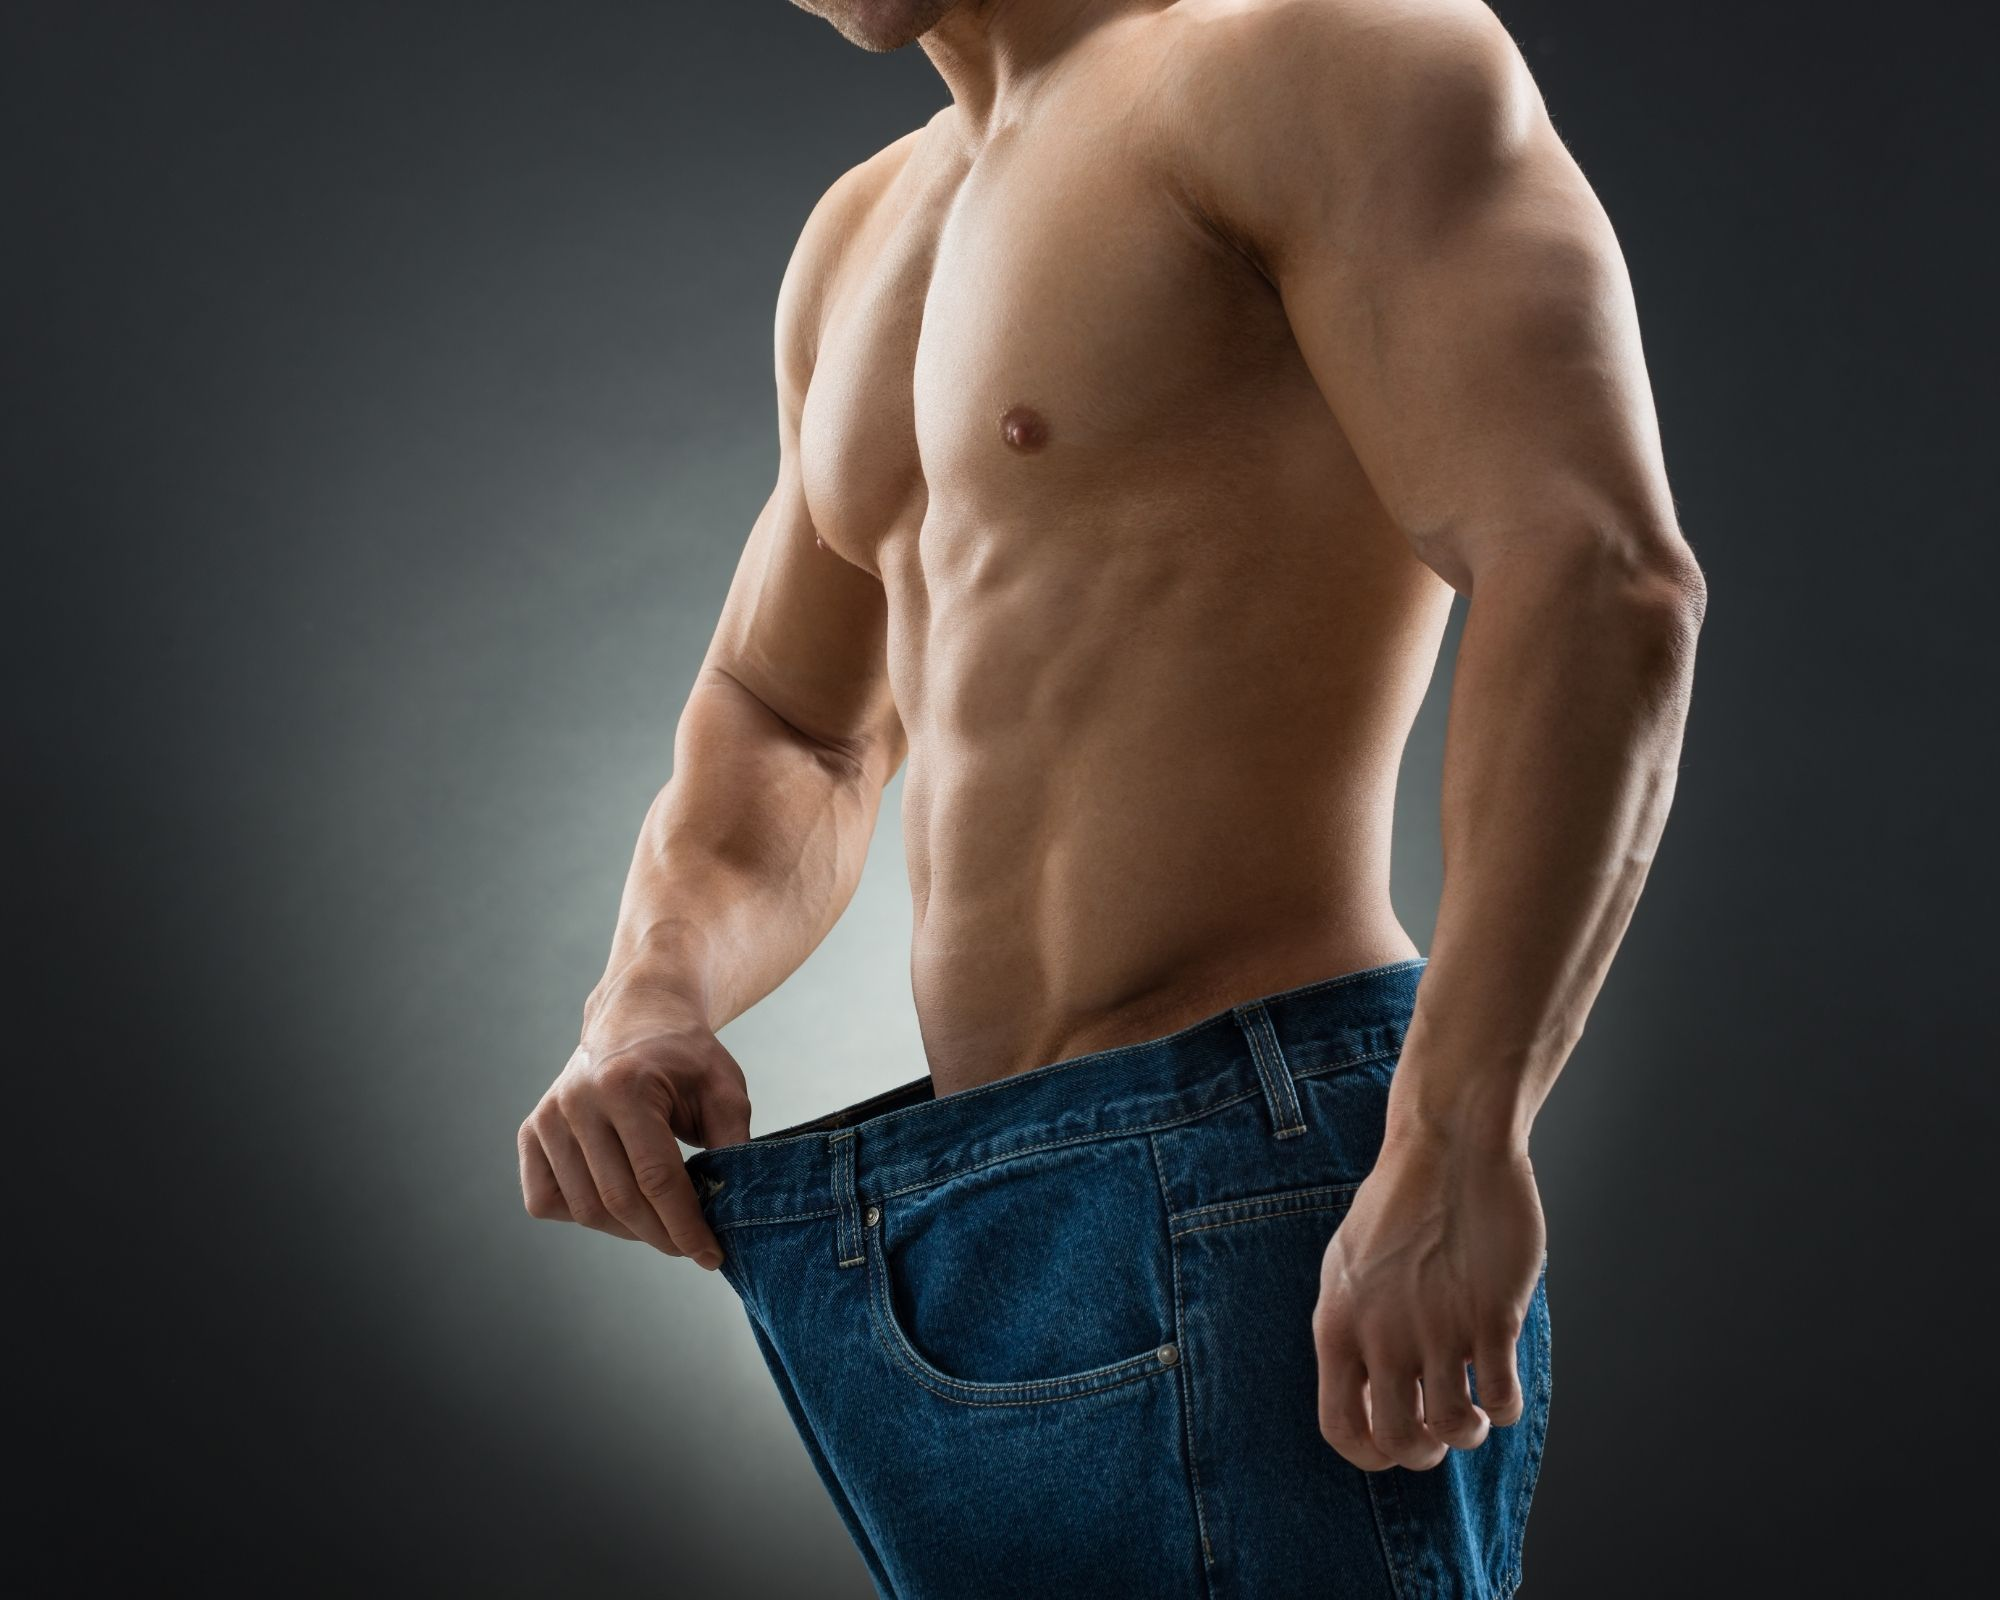 Man in old jeans showing weight loss